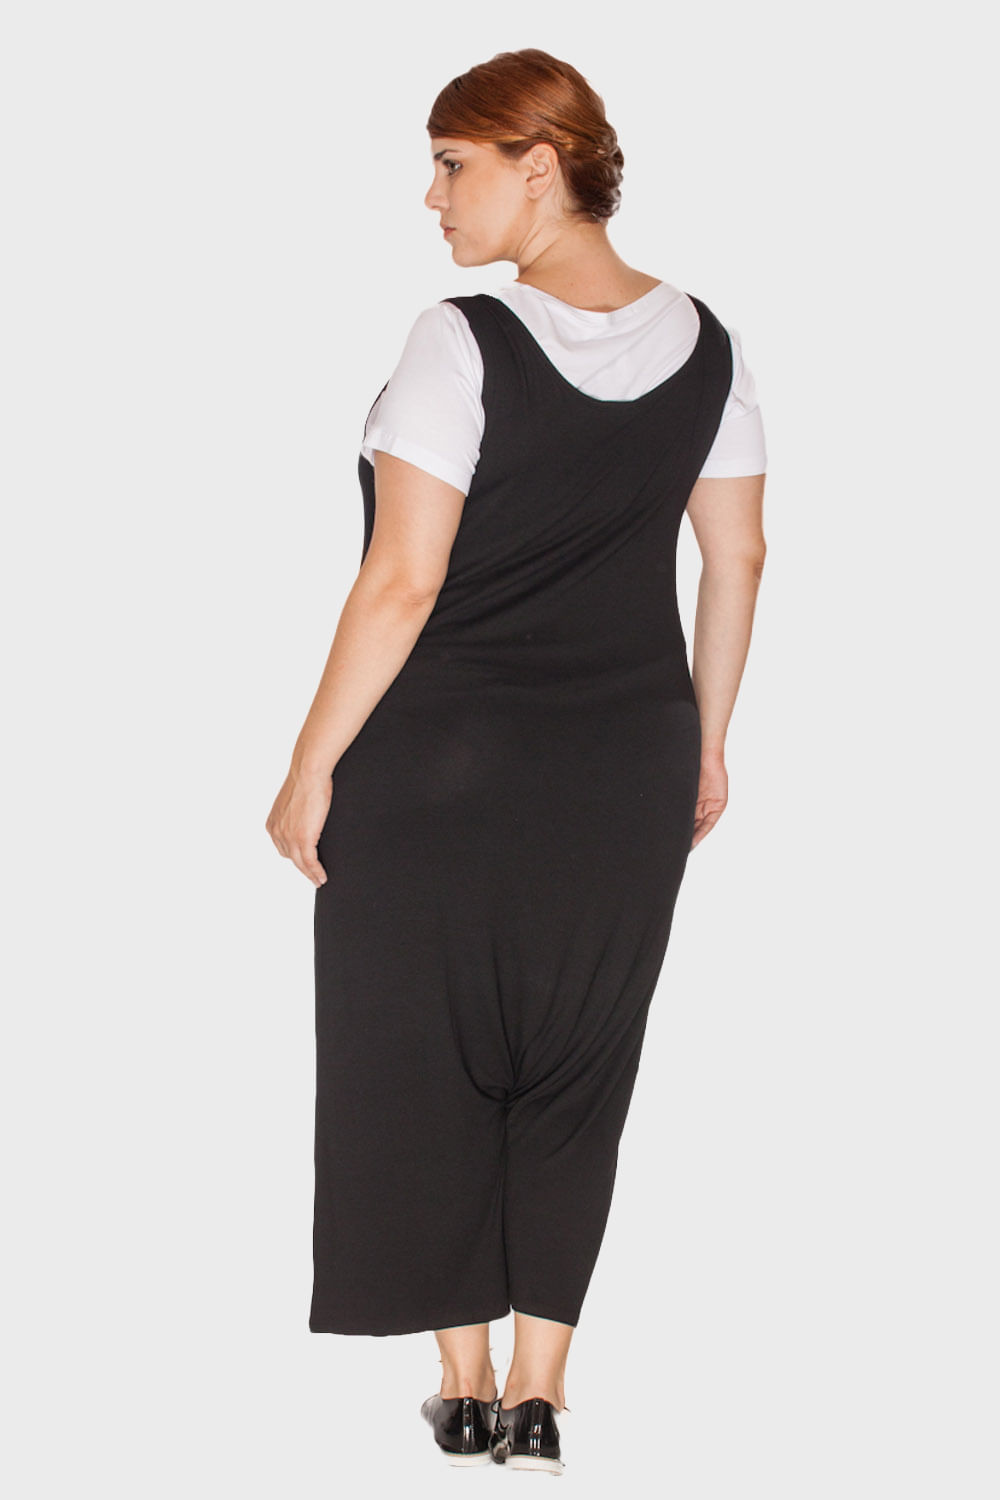 Macacao-Curto-Plus-Size_T1